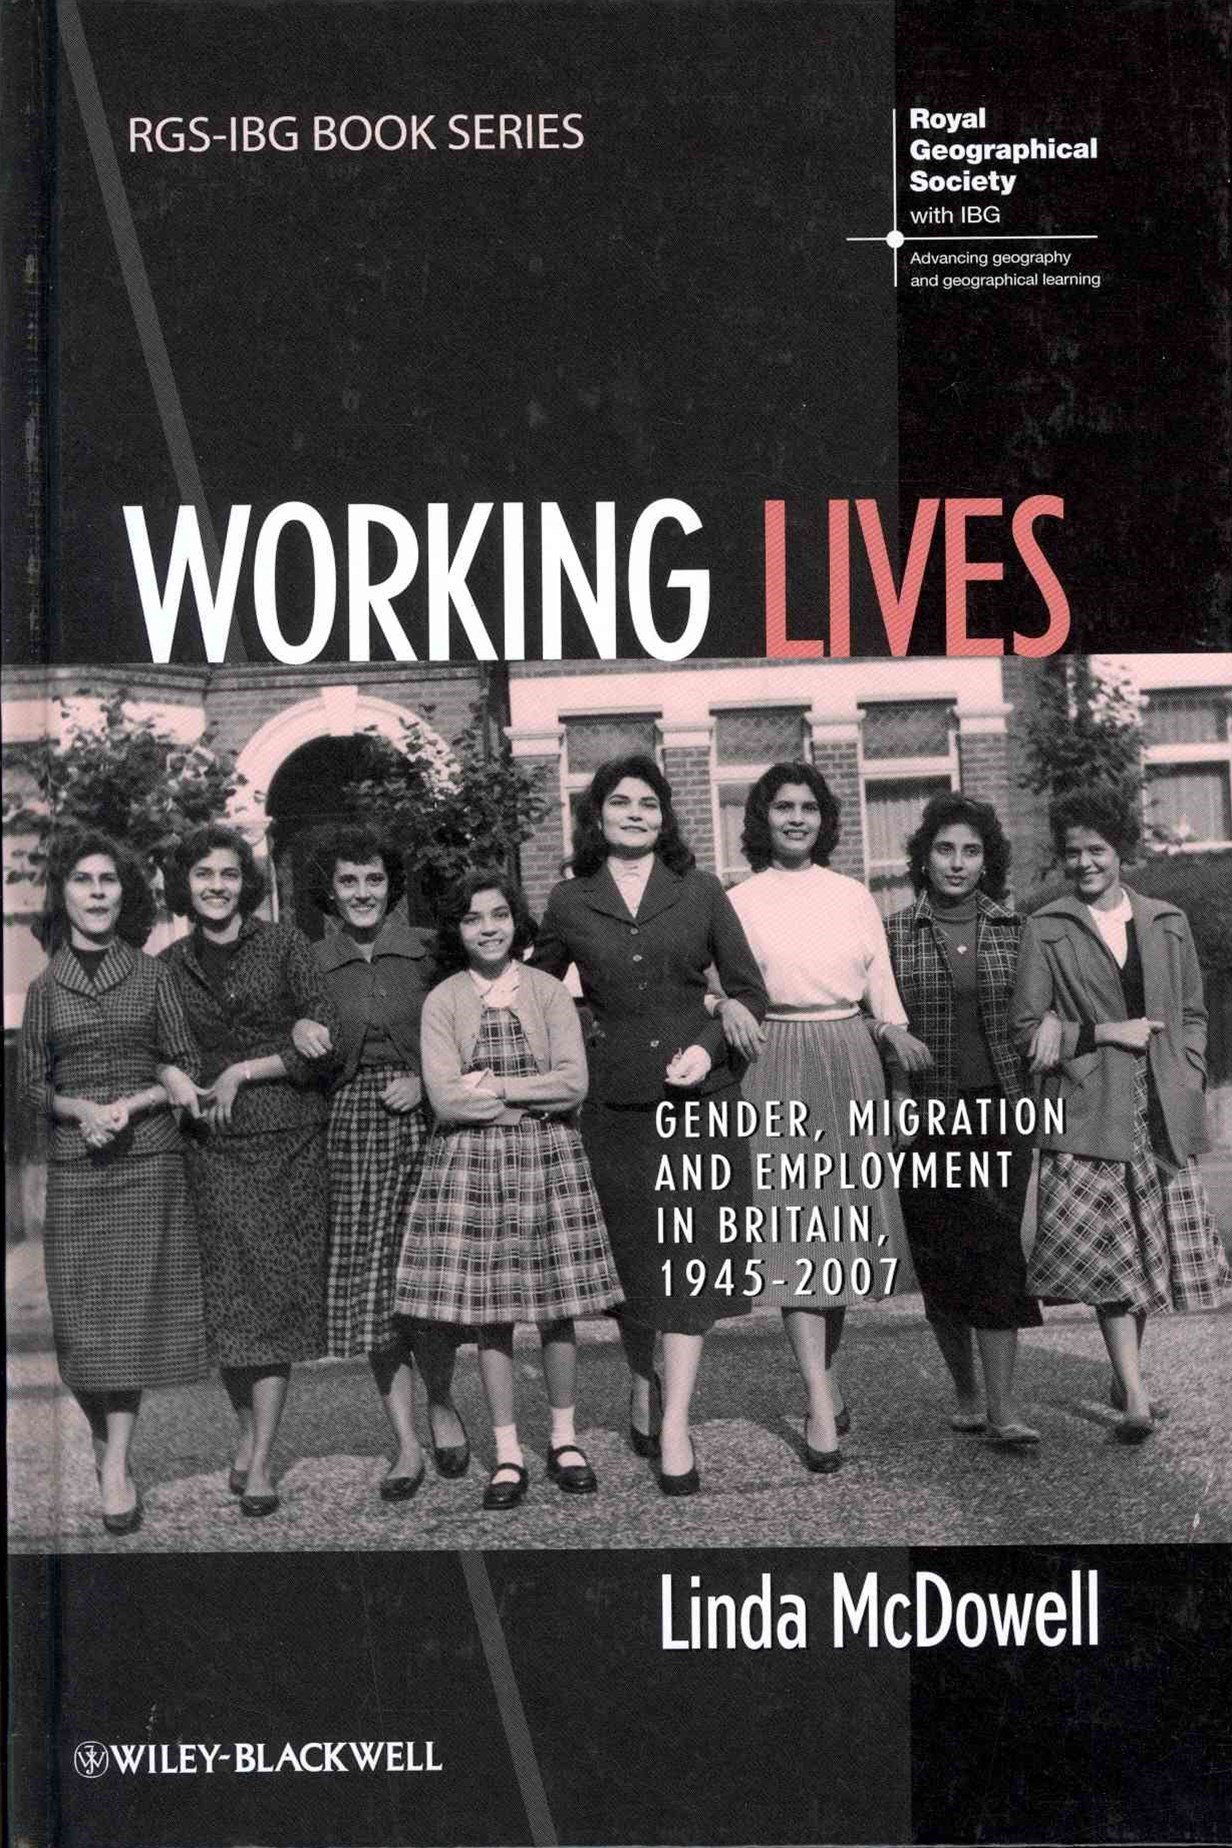 Working Lives - Gender, Migration and Employment  in Britain, 1945-2007